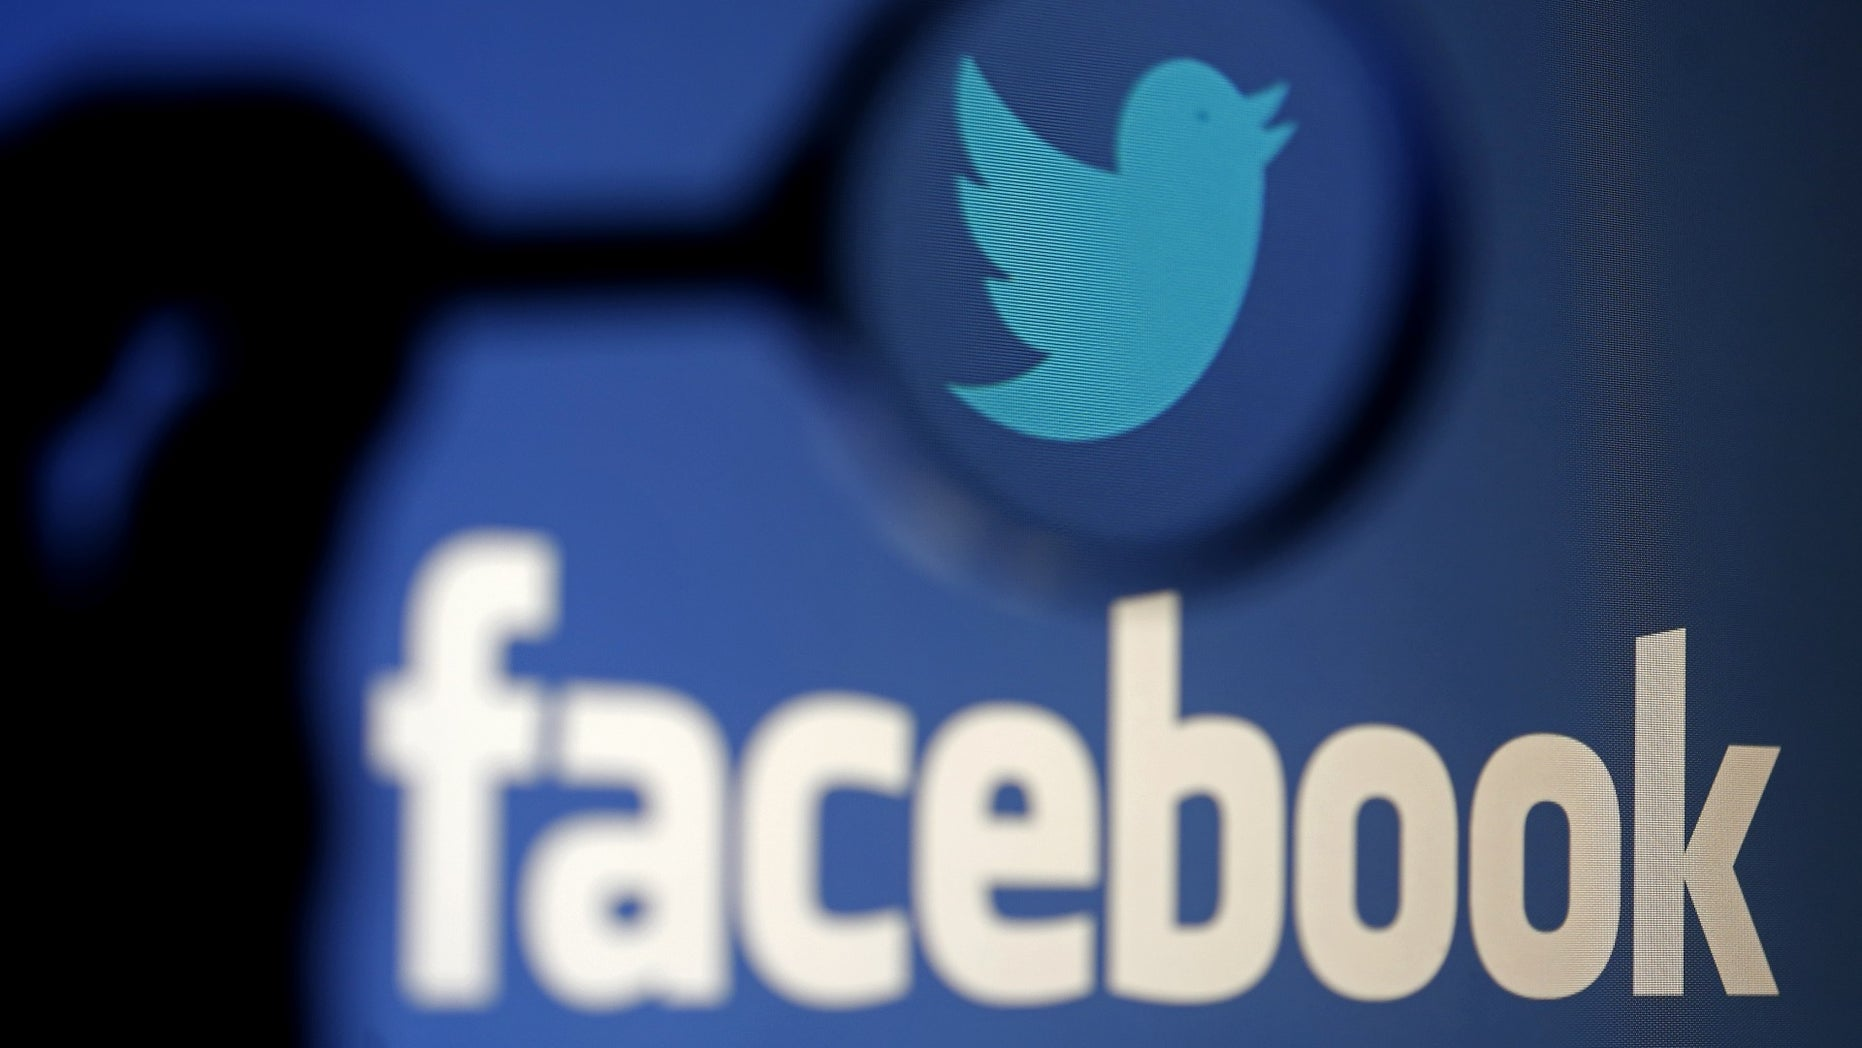 A logo of Twitter is pictured next to the logo of Facebook in this photo illustration.